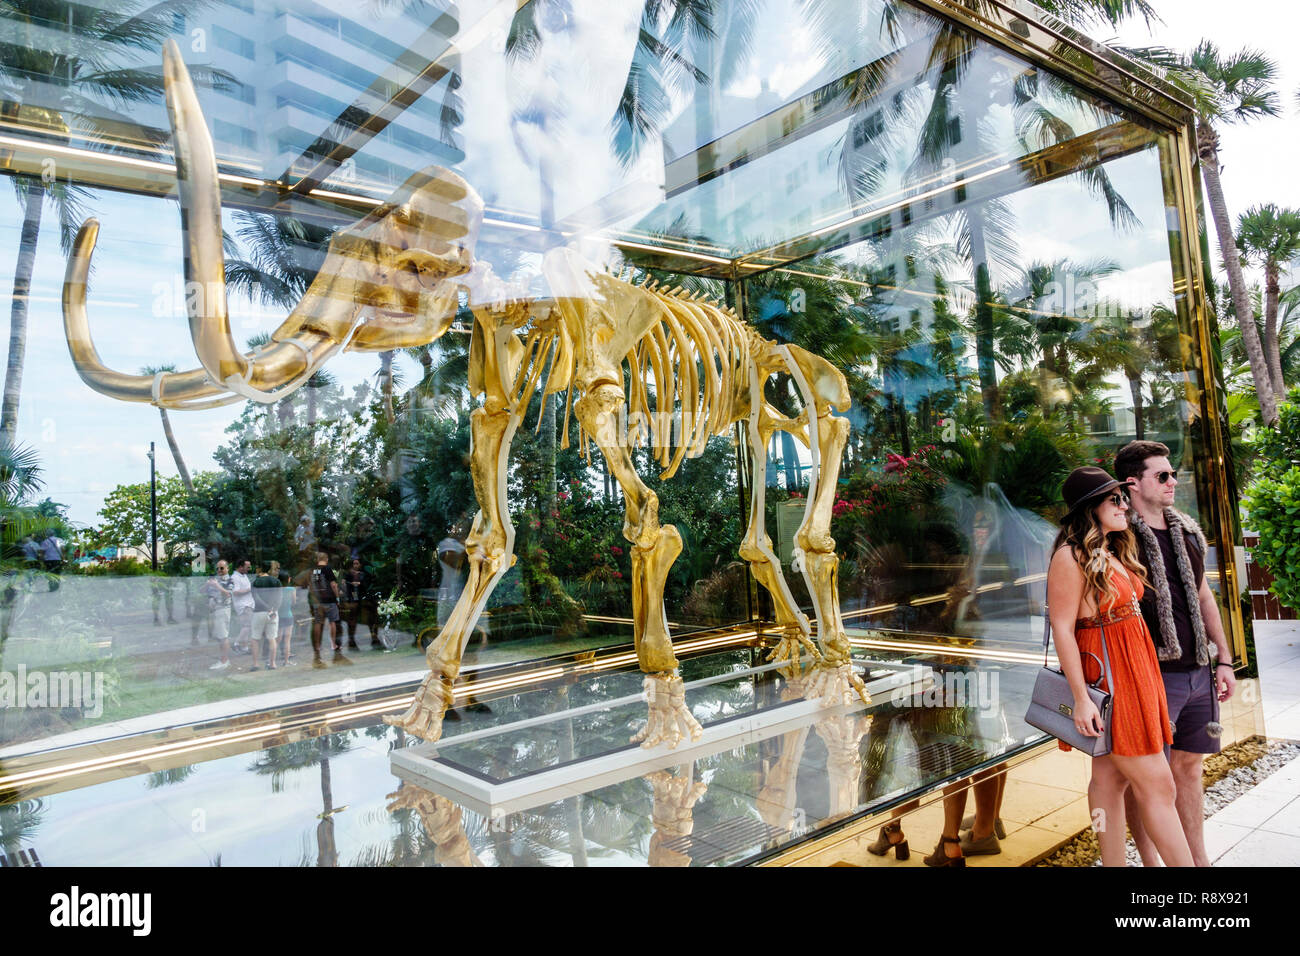 Miami Beach Florida Collins Avenue Faena hotel luxury district Art Basel Weekend Gone but not Forgotten by Damien Hirst golden wooly mammoth sculpture Stock Photo